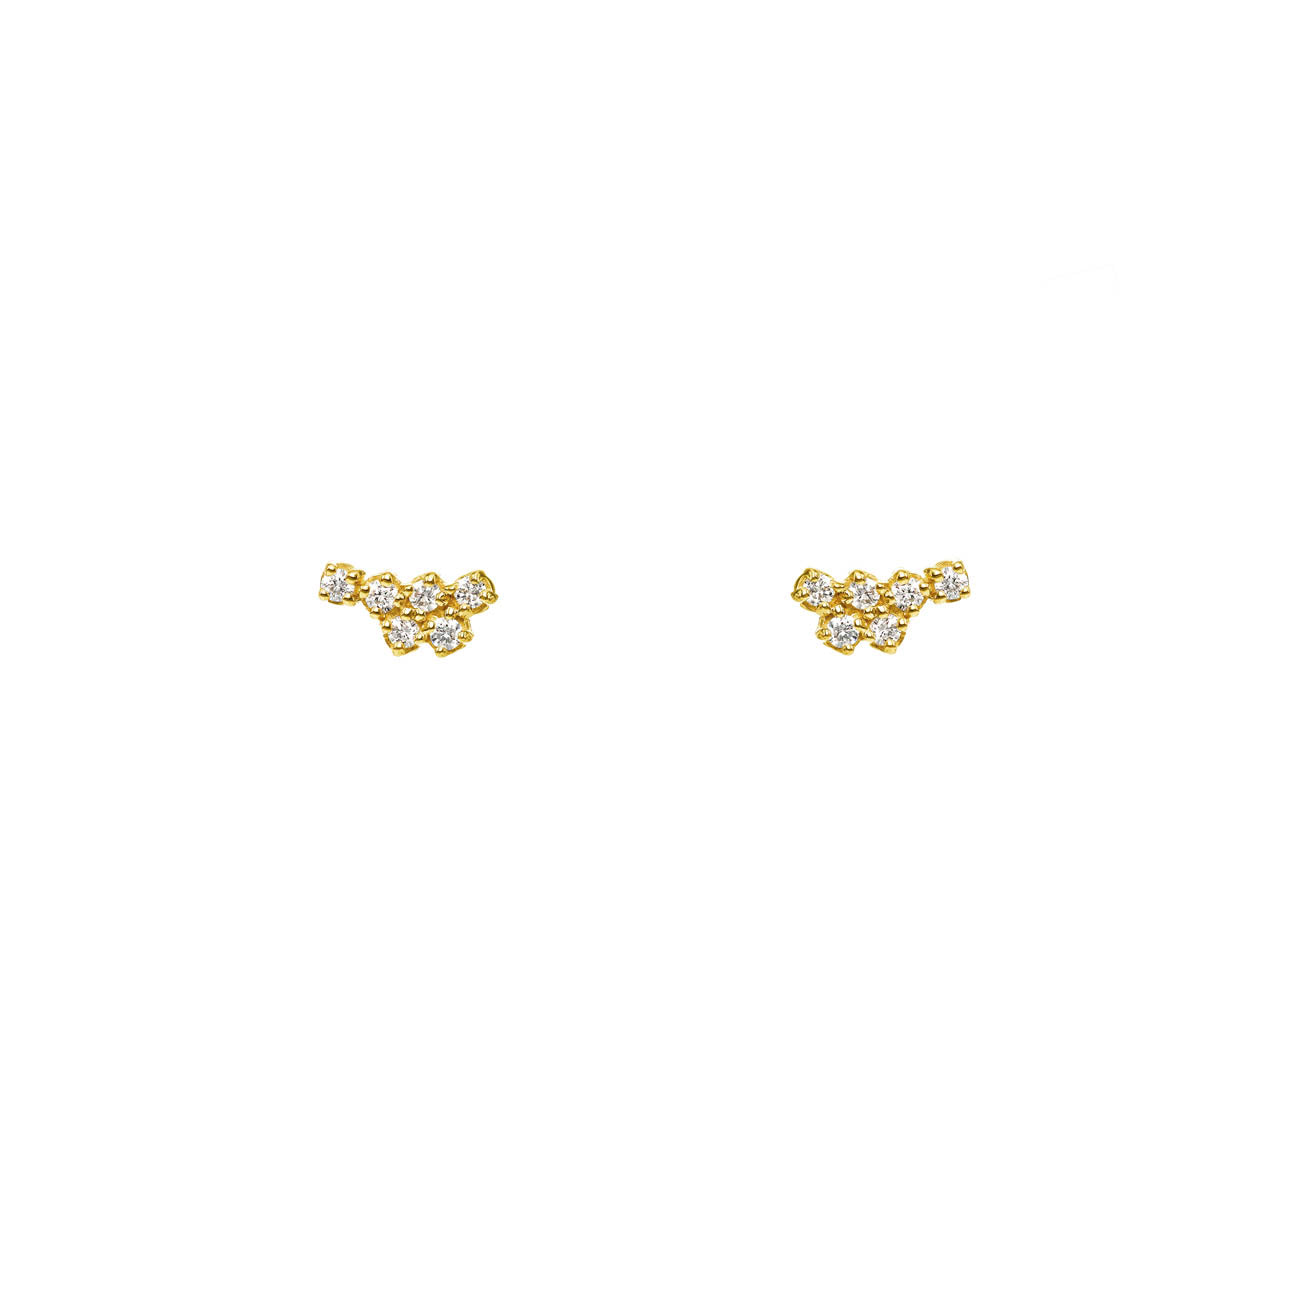 Image of Tiny Cluster Earrings